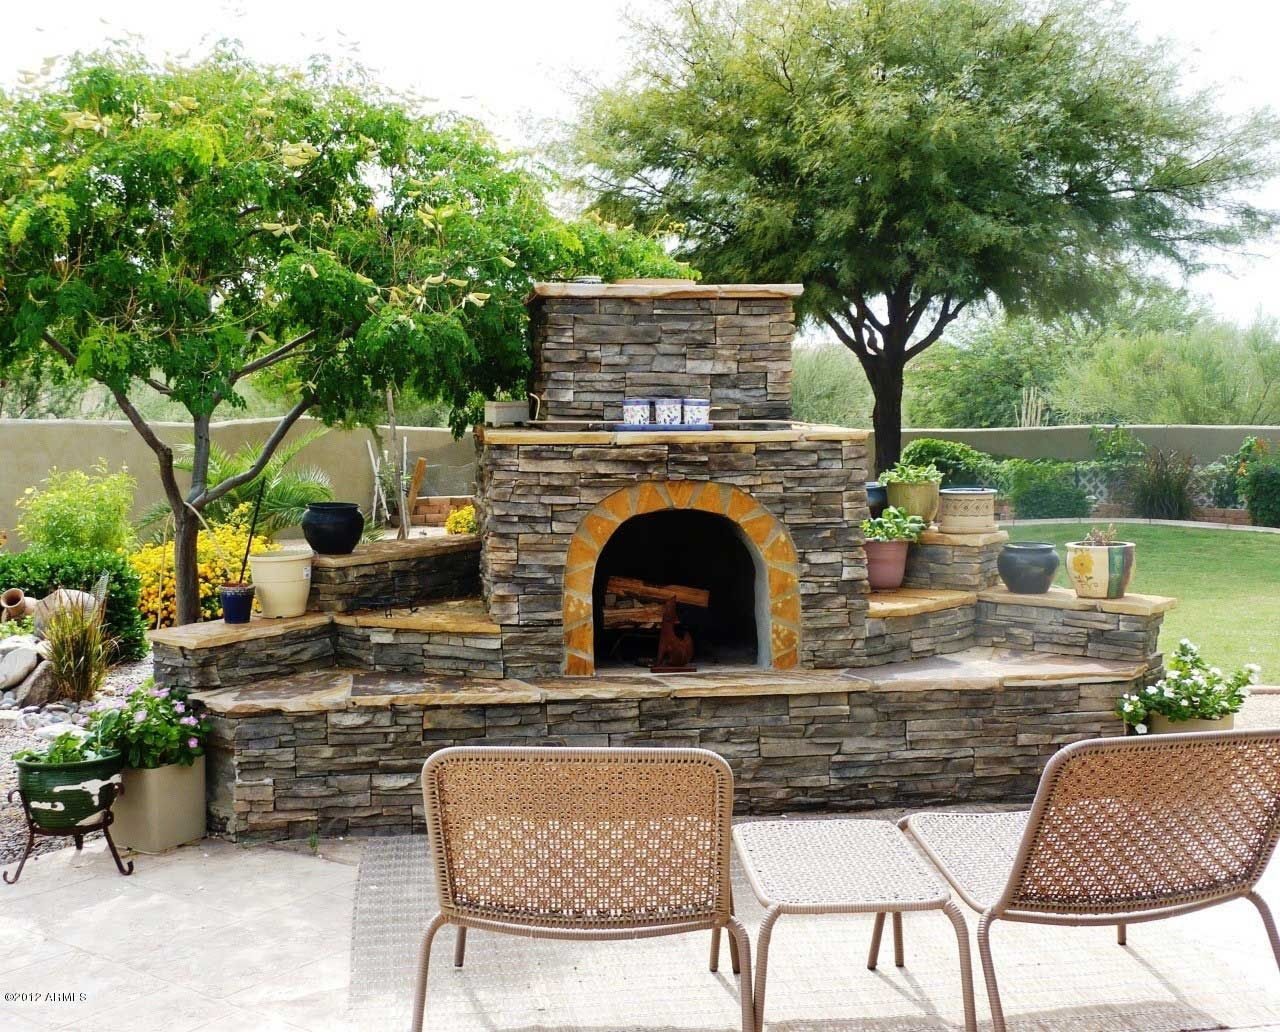 Garden Fireplace Design Image Outdoor Patio And Fireplace Ideas  Dream Home  Pinterest .